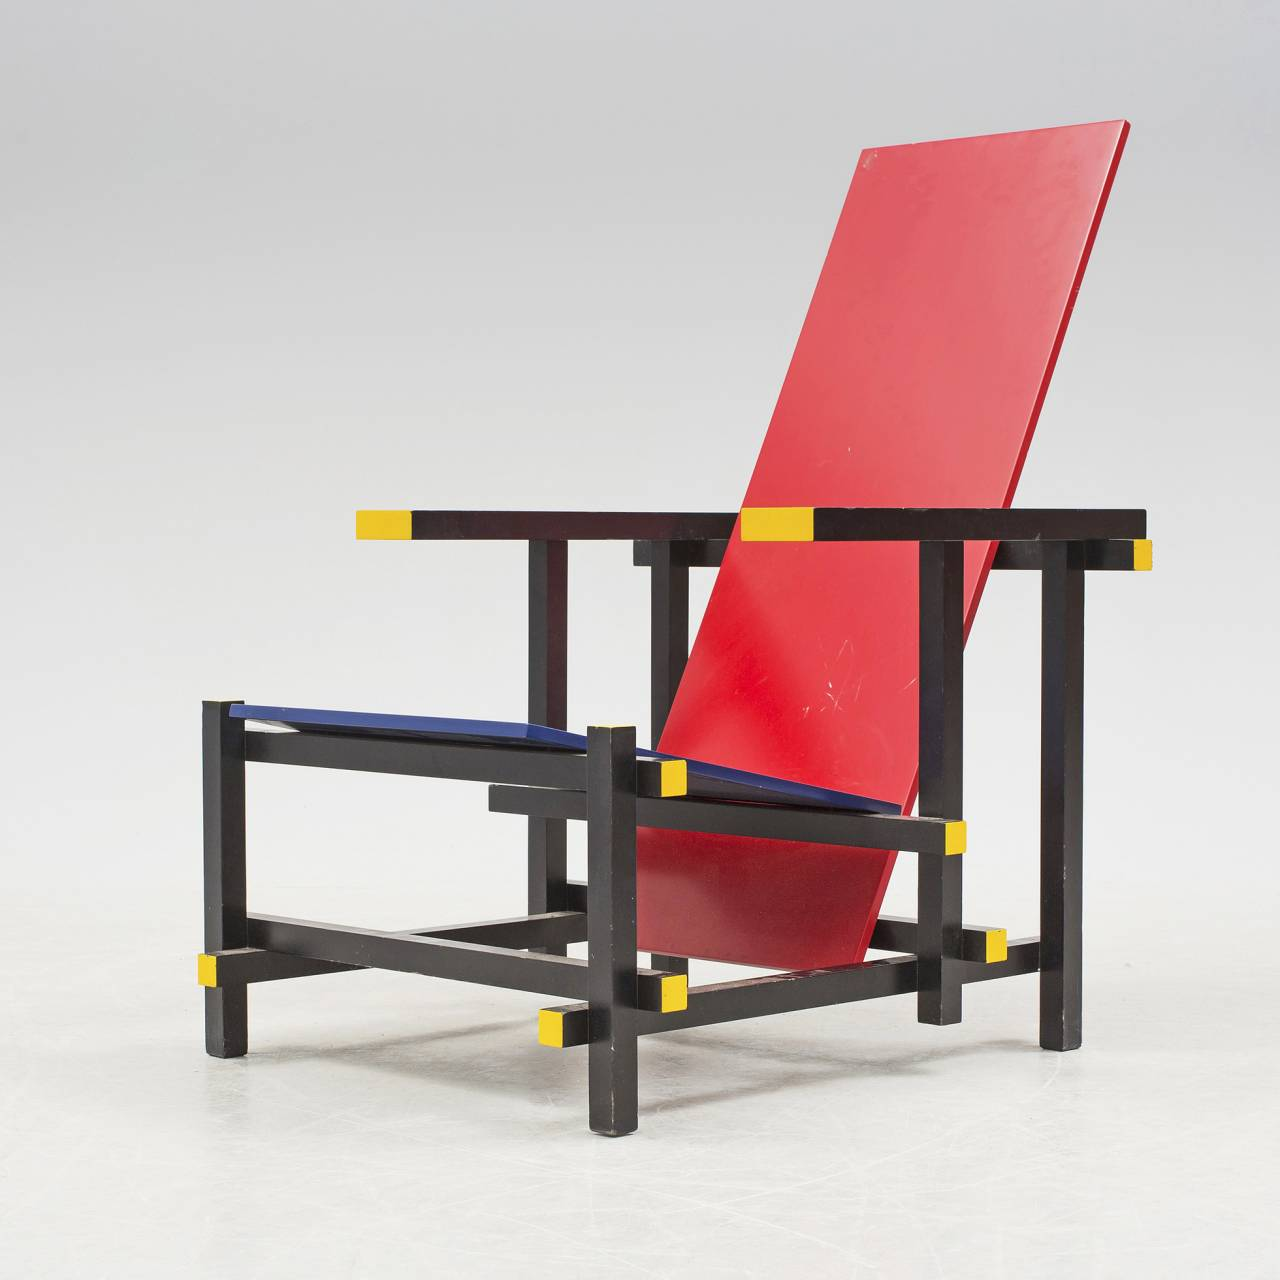 Den holländske arkitekten Gerrit Rietvelds Red and Blue Armchair